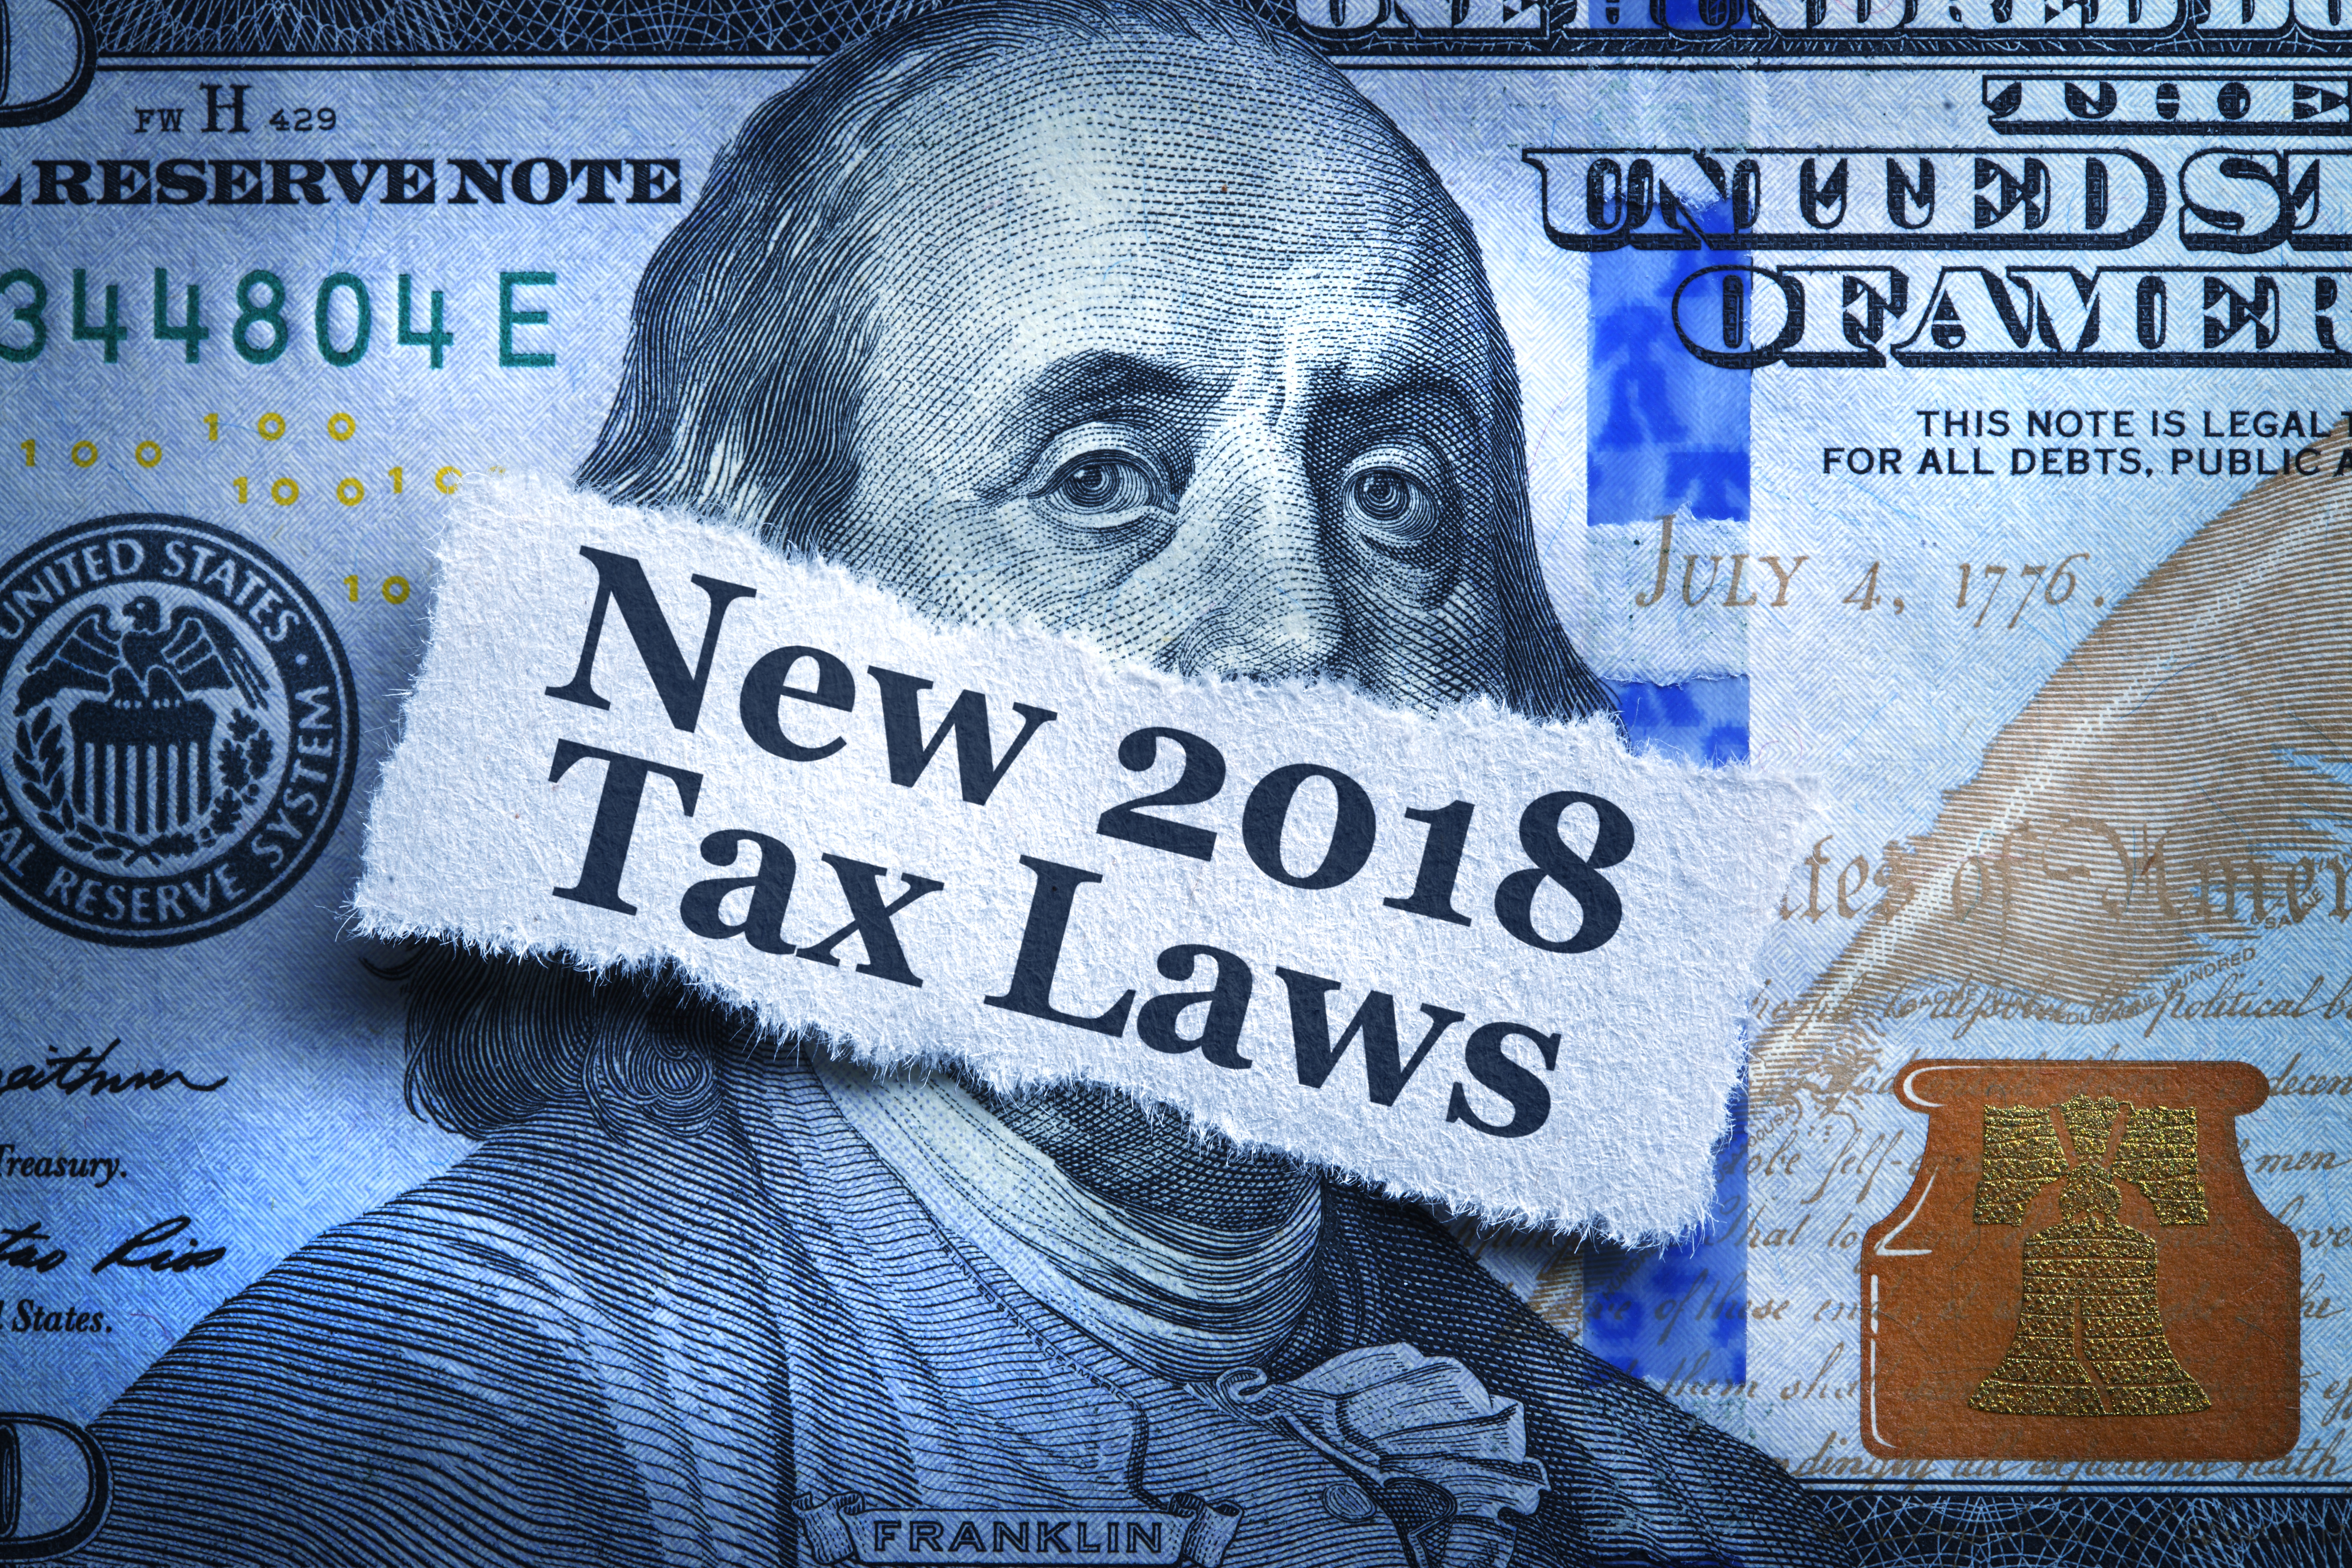 A torn piece of paper telling of the new 2018 tax laws rests on top of a one hundred dollar bill.